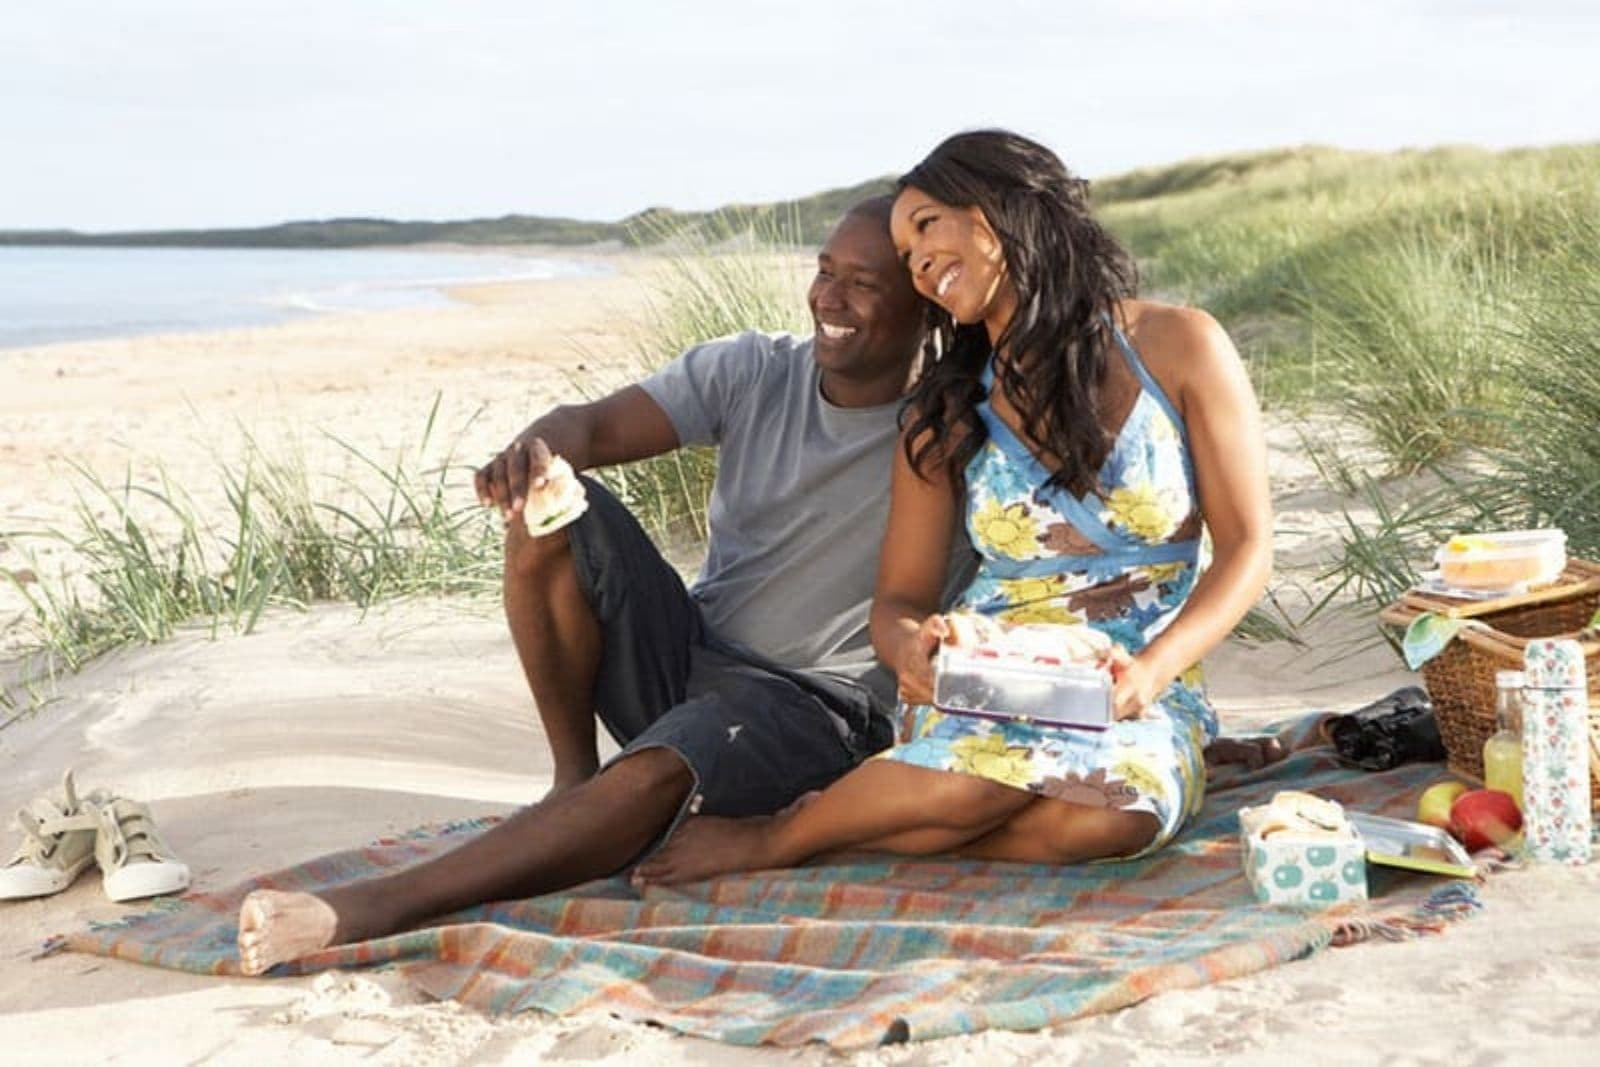 a man and a woman are sitting on the beach